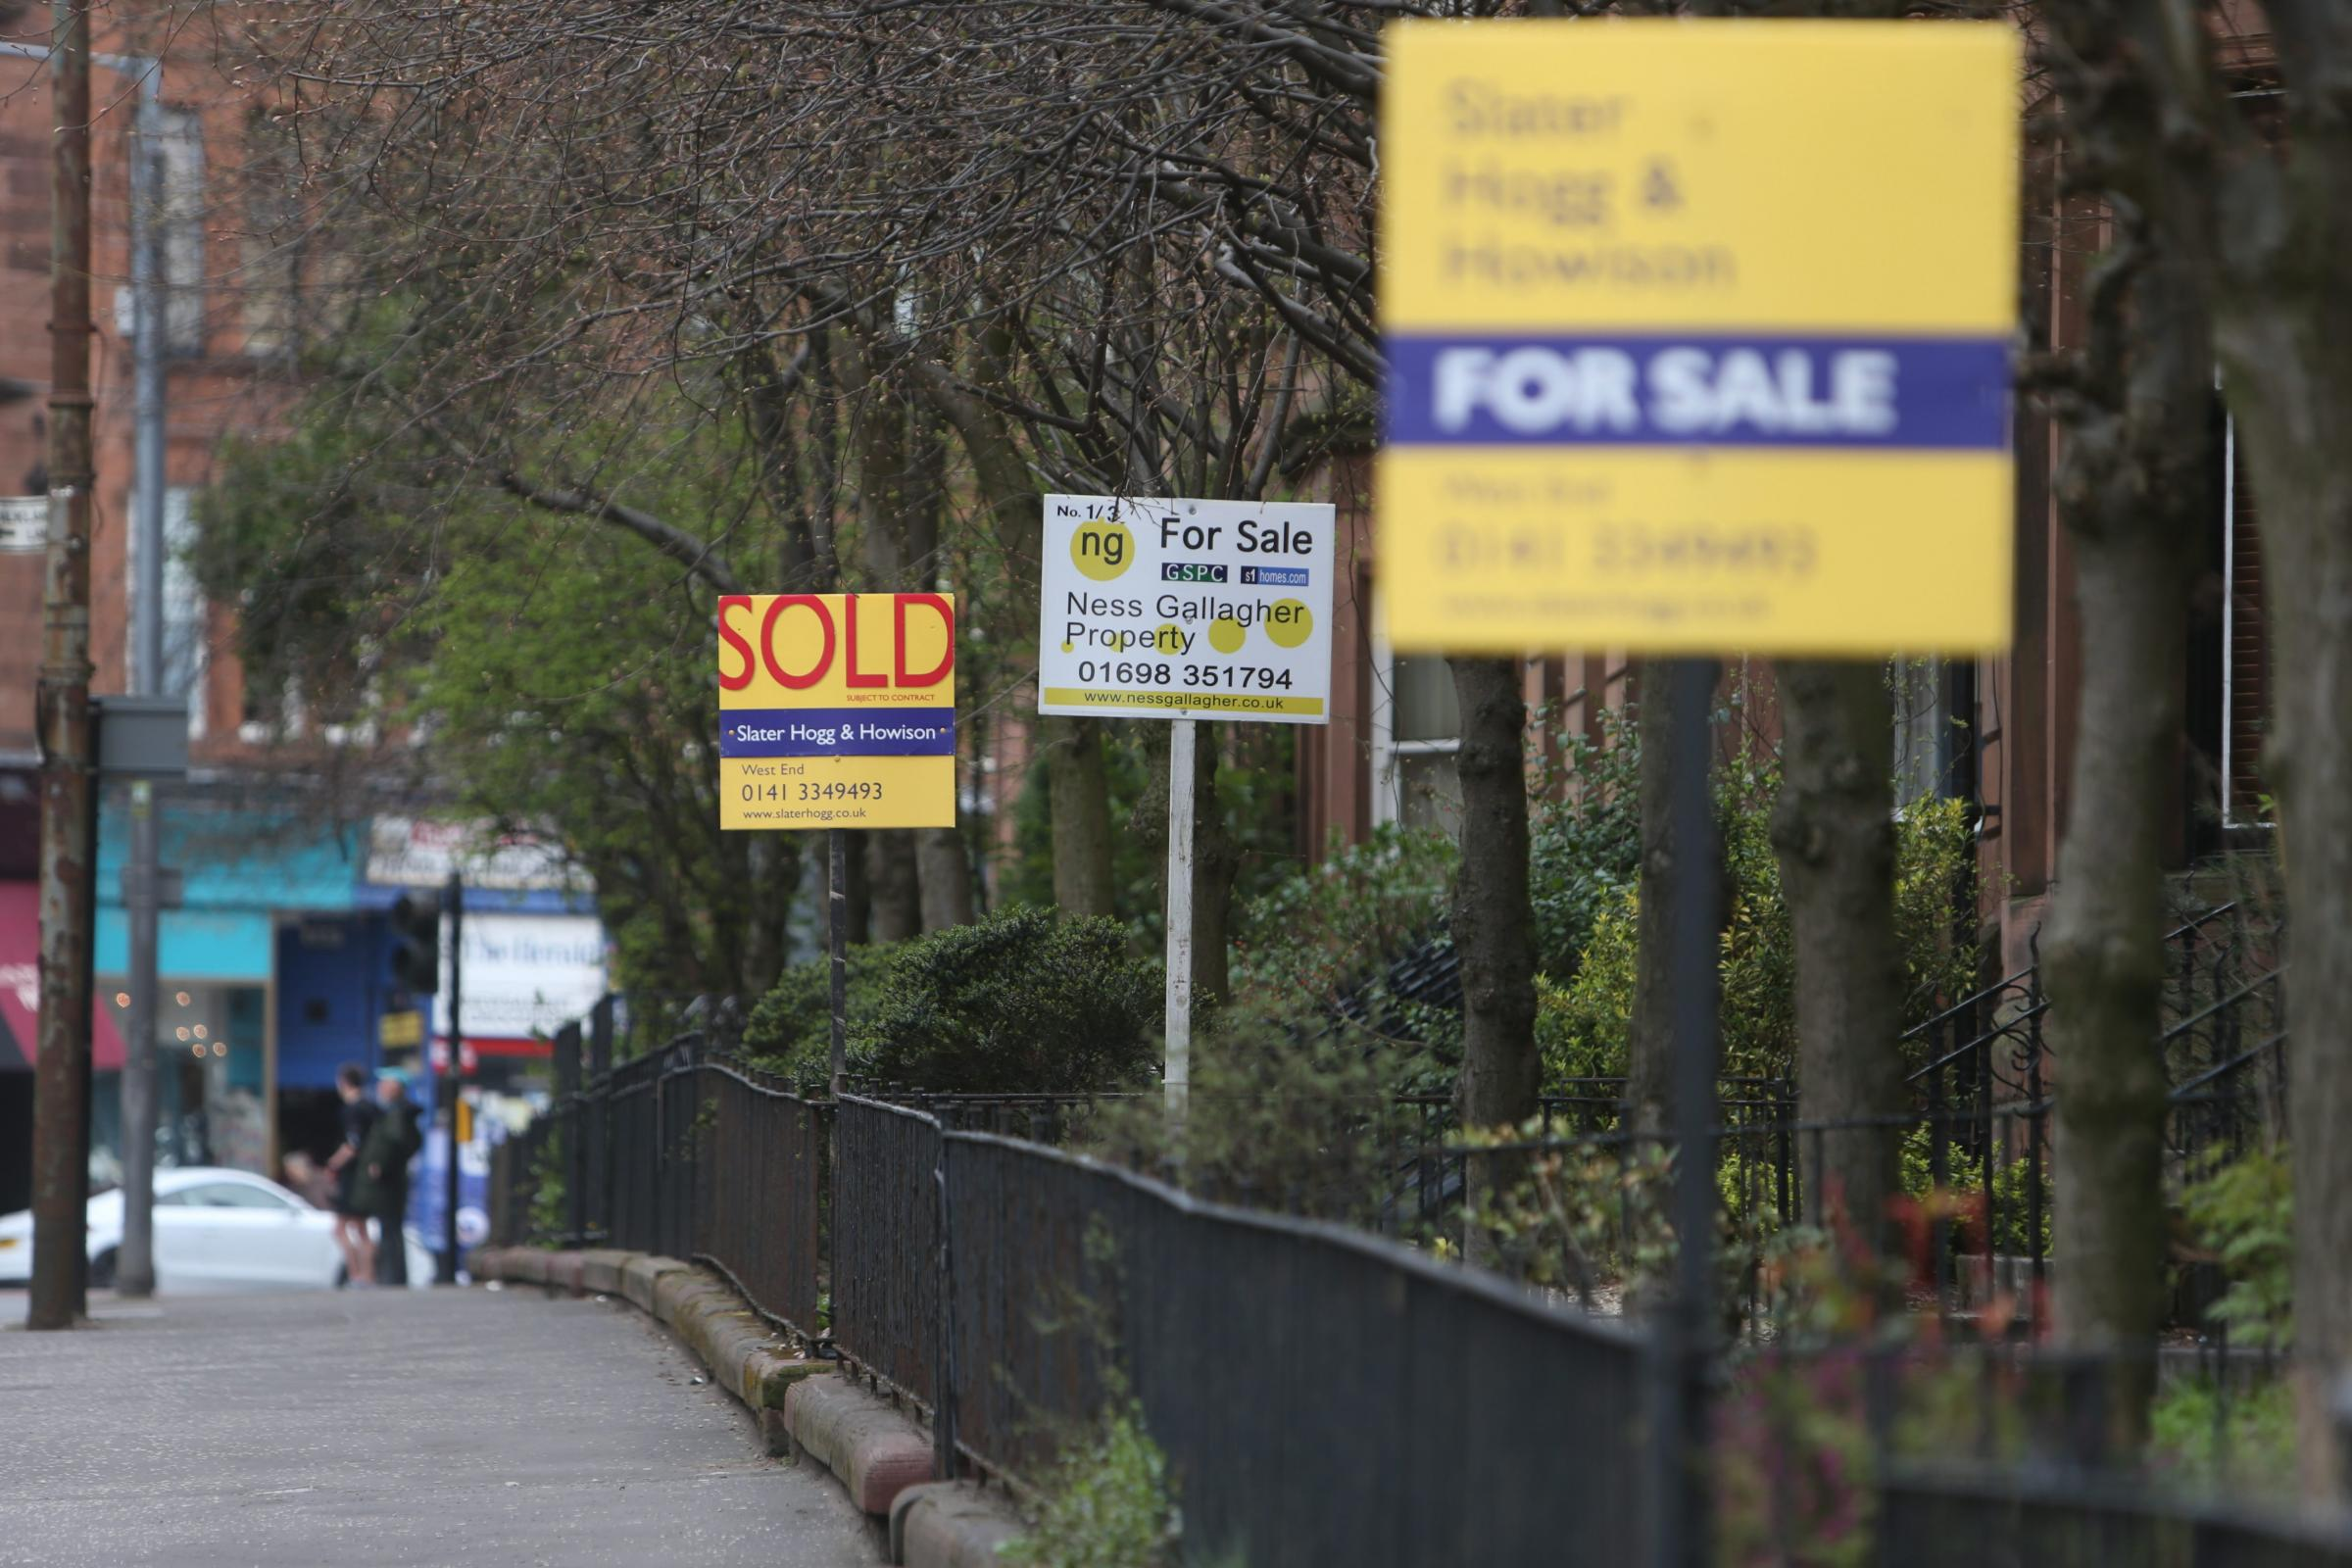 The housing market makes it extremely difficult for many young people to buy or rent